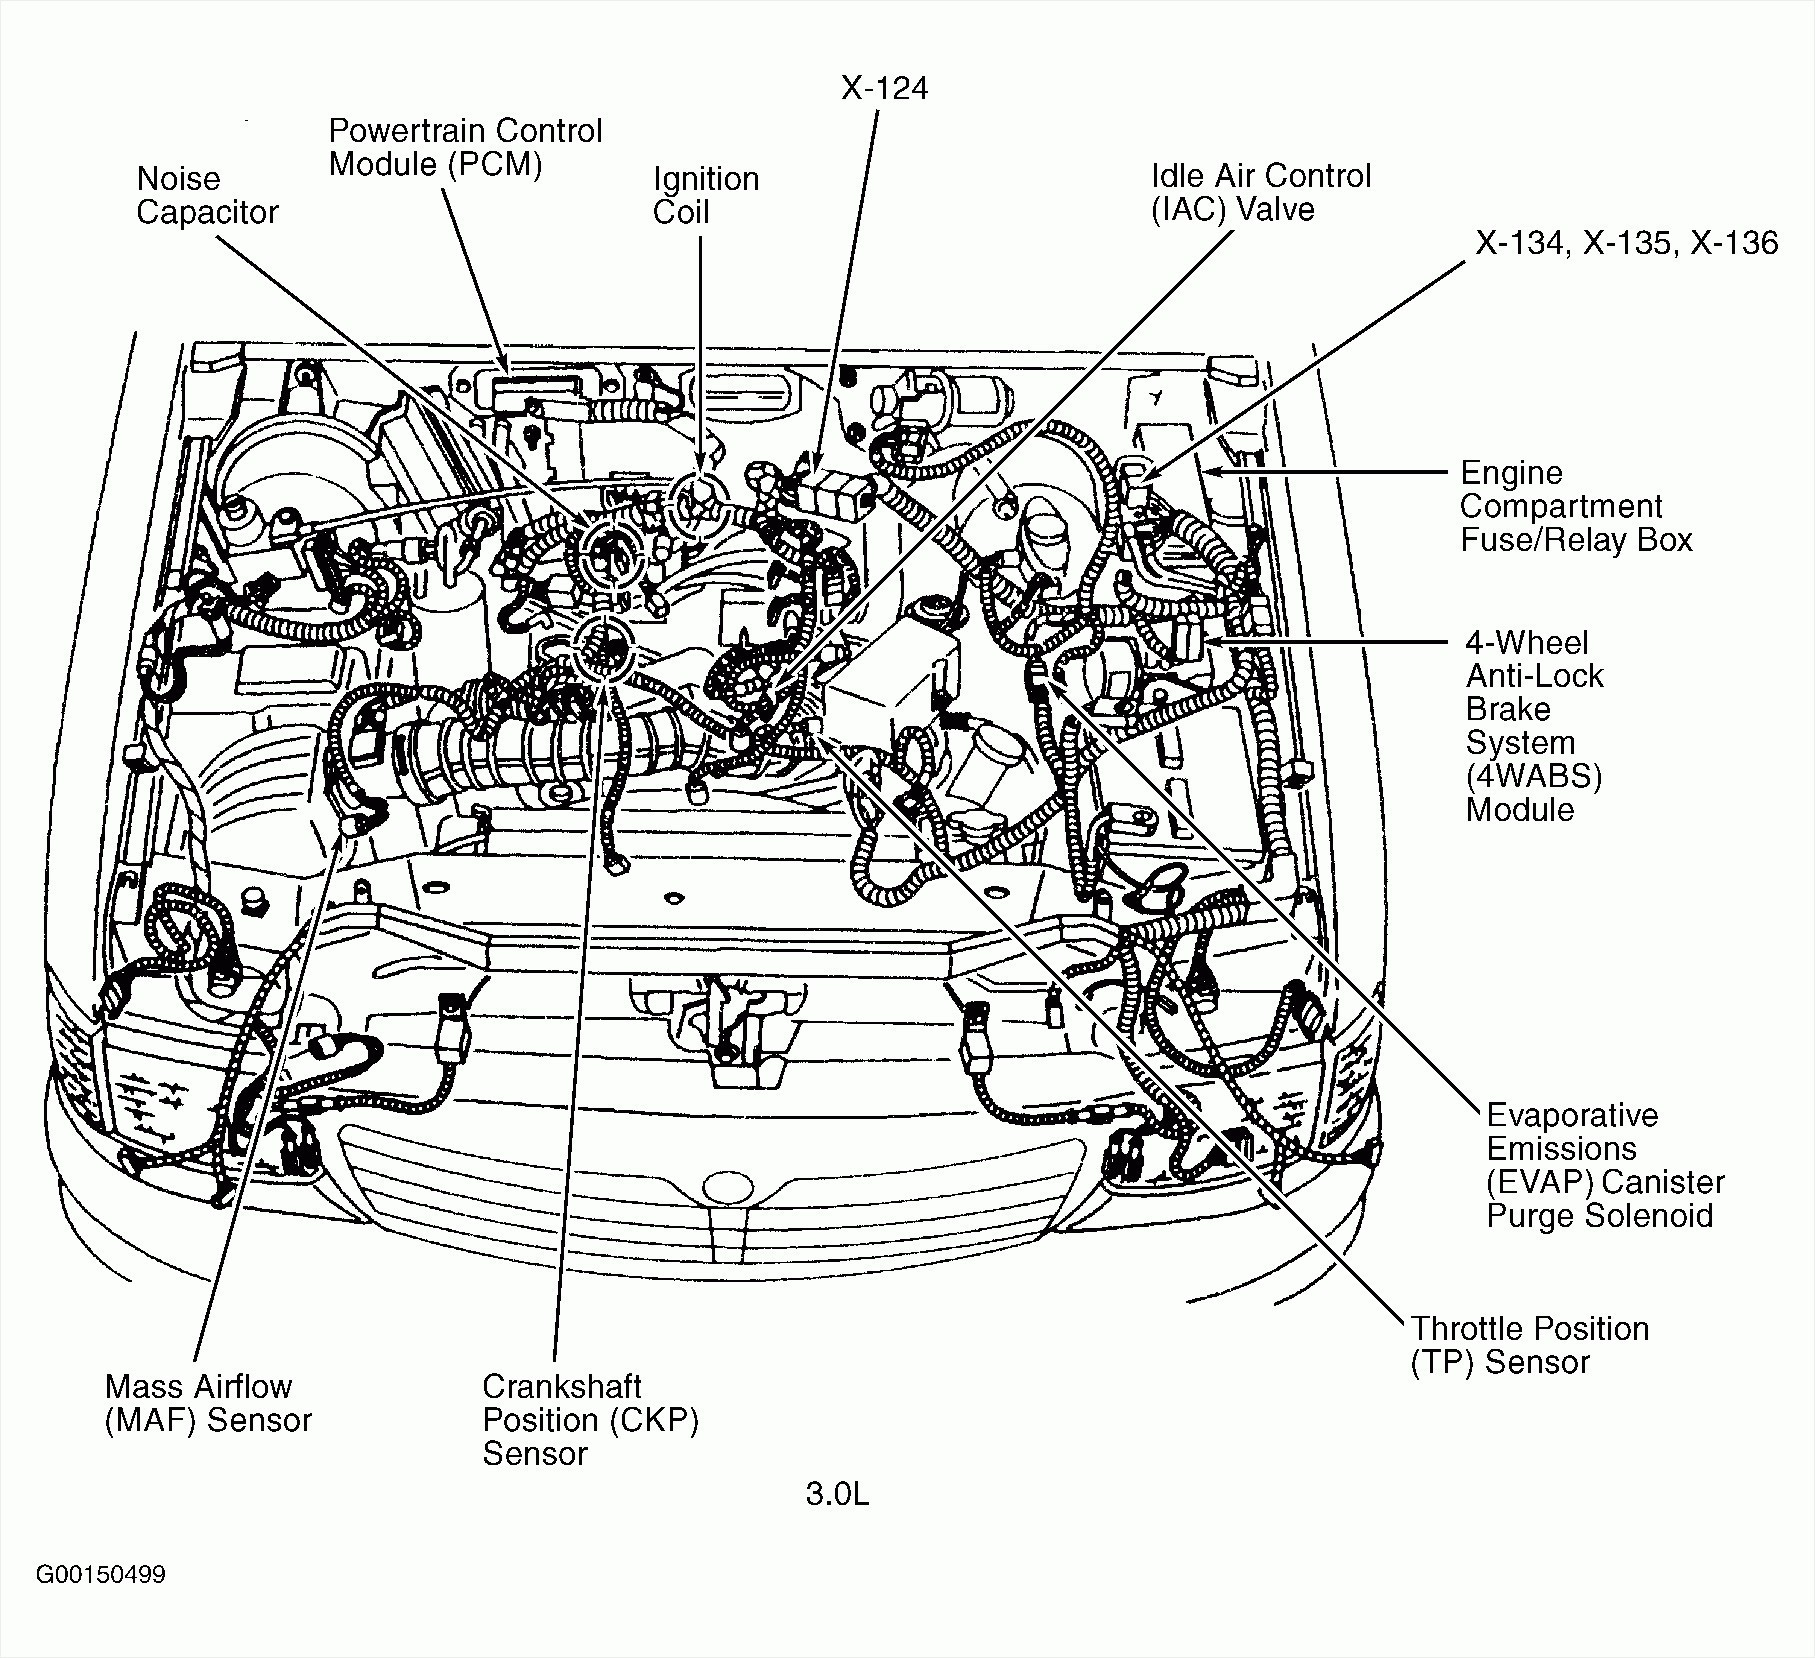 Toyota 22r Engine Diagram toyota Engine Schematics Wiring Diagram Paper Of Toyota 22r Engine Diagram toyota Hilux 22r Engine Diagram Wiring Diagram Datasource